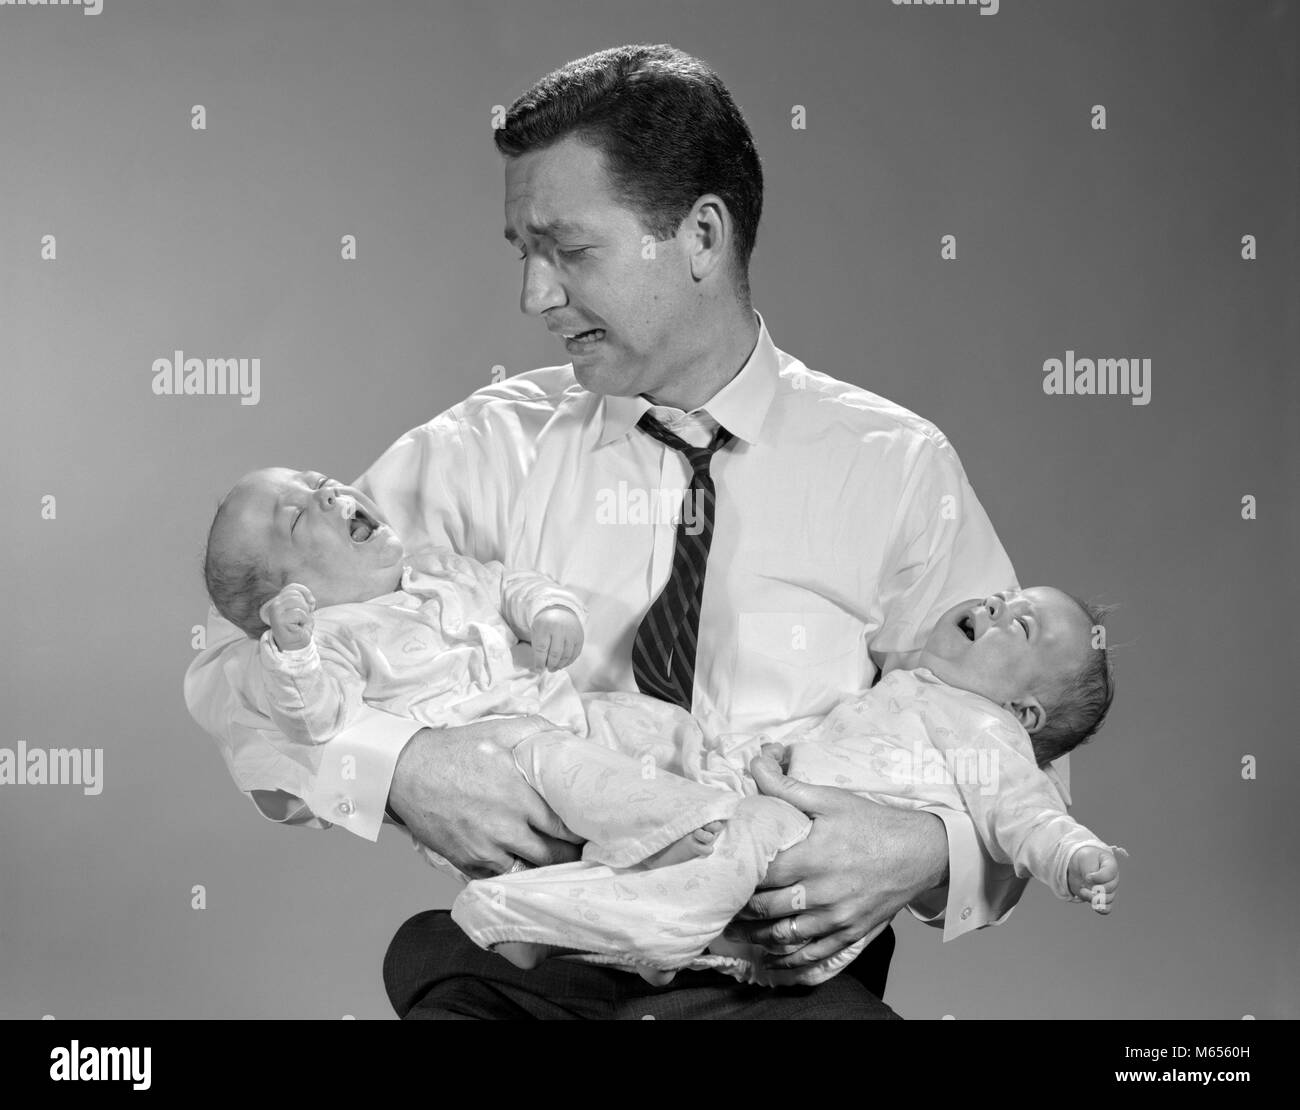 1960s PANICKED MAN FATHER HOLDING CRYING TWIN BABIES - b22022 HAR001 HARS CAUCASIAN SONS DOUBLE LIFESTYLE PARENTING - Stock Image